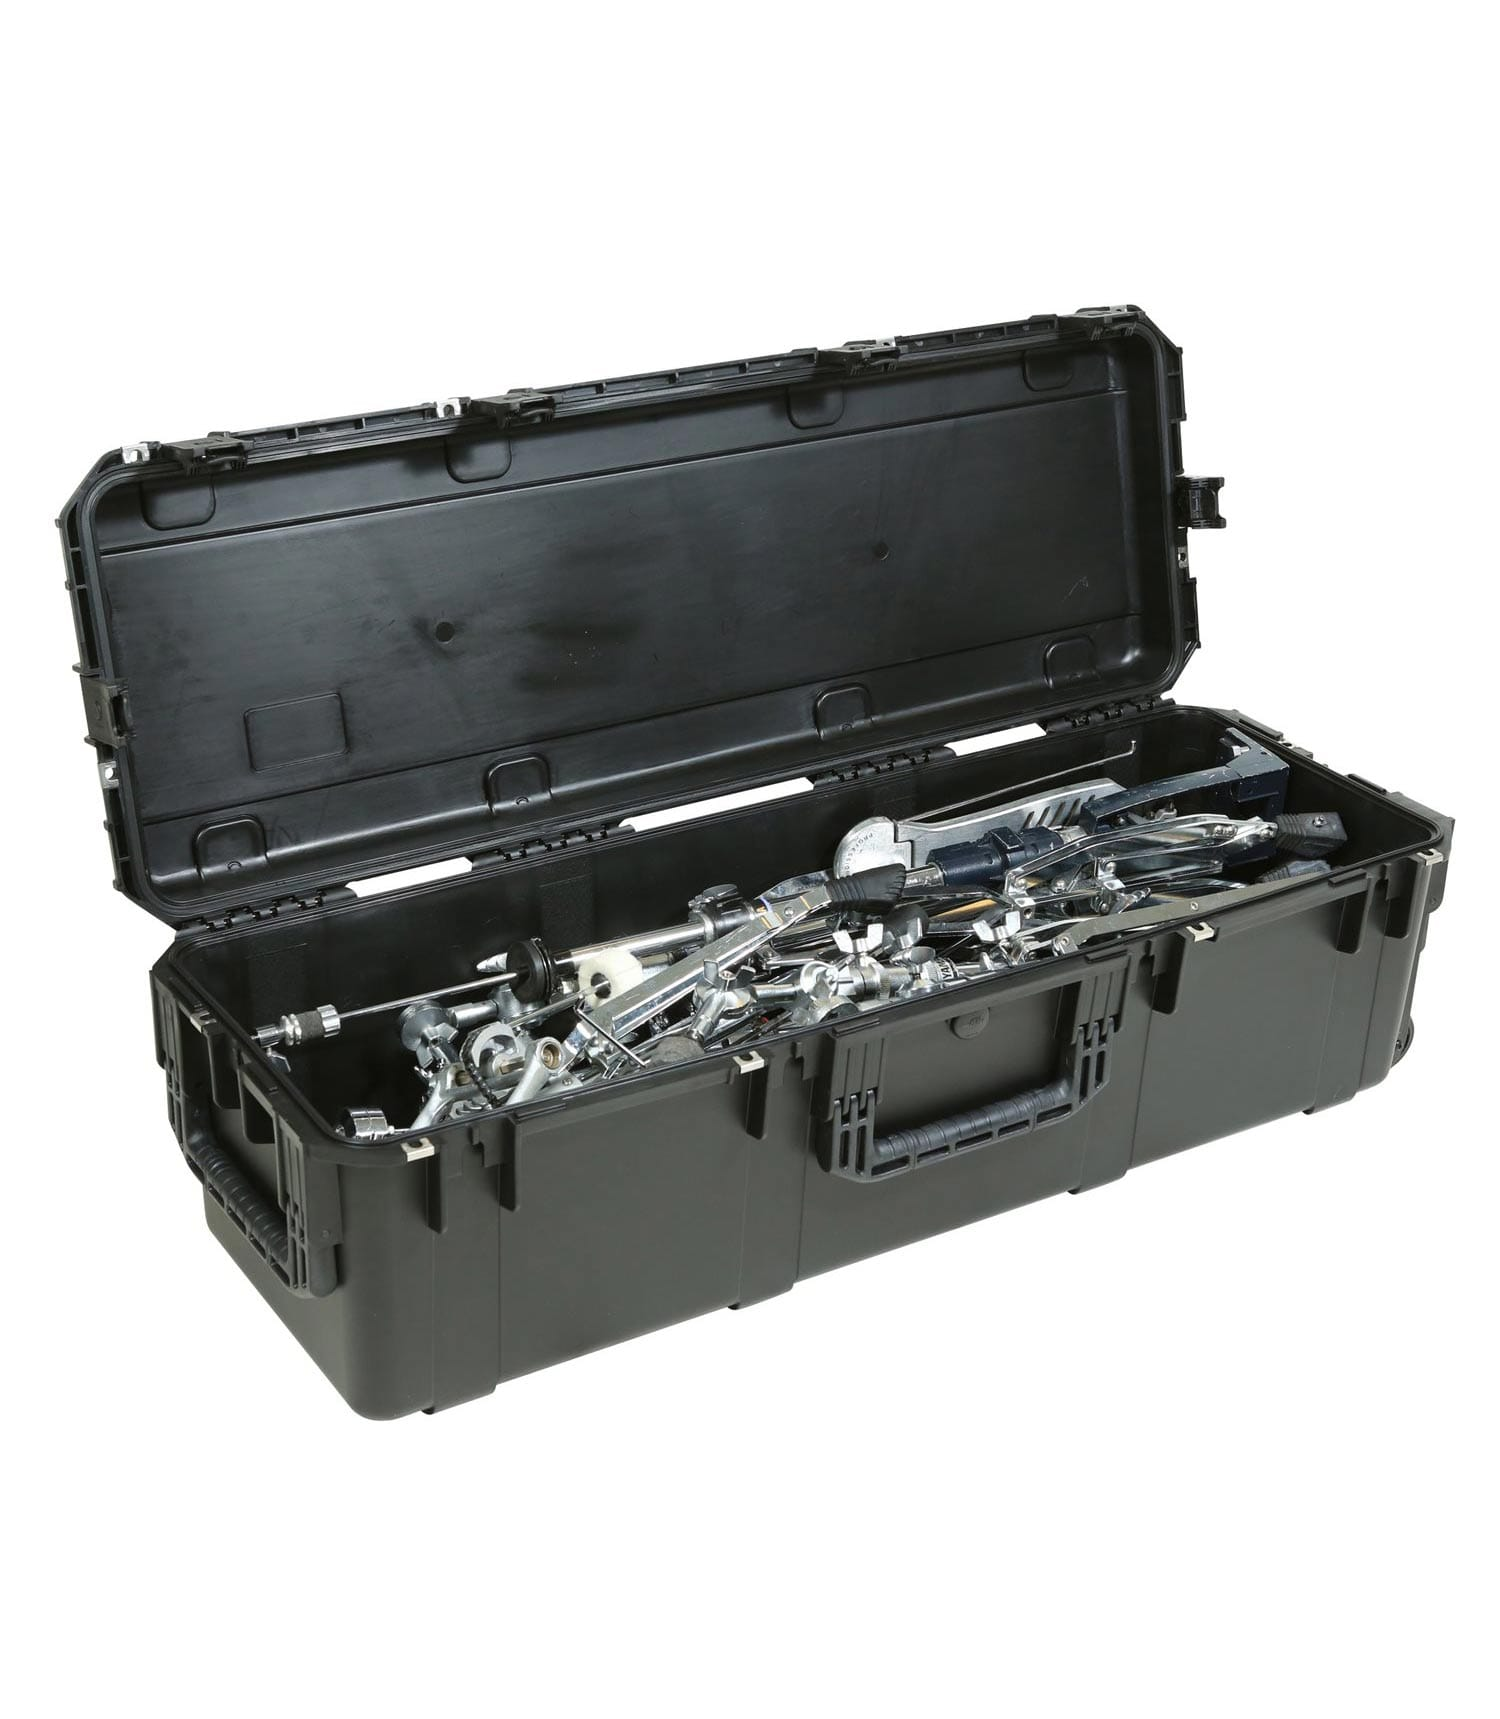 Buy skb 3i 4213 12BE Large Drum Hardware Case with handle Melody House